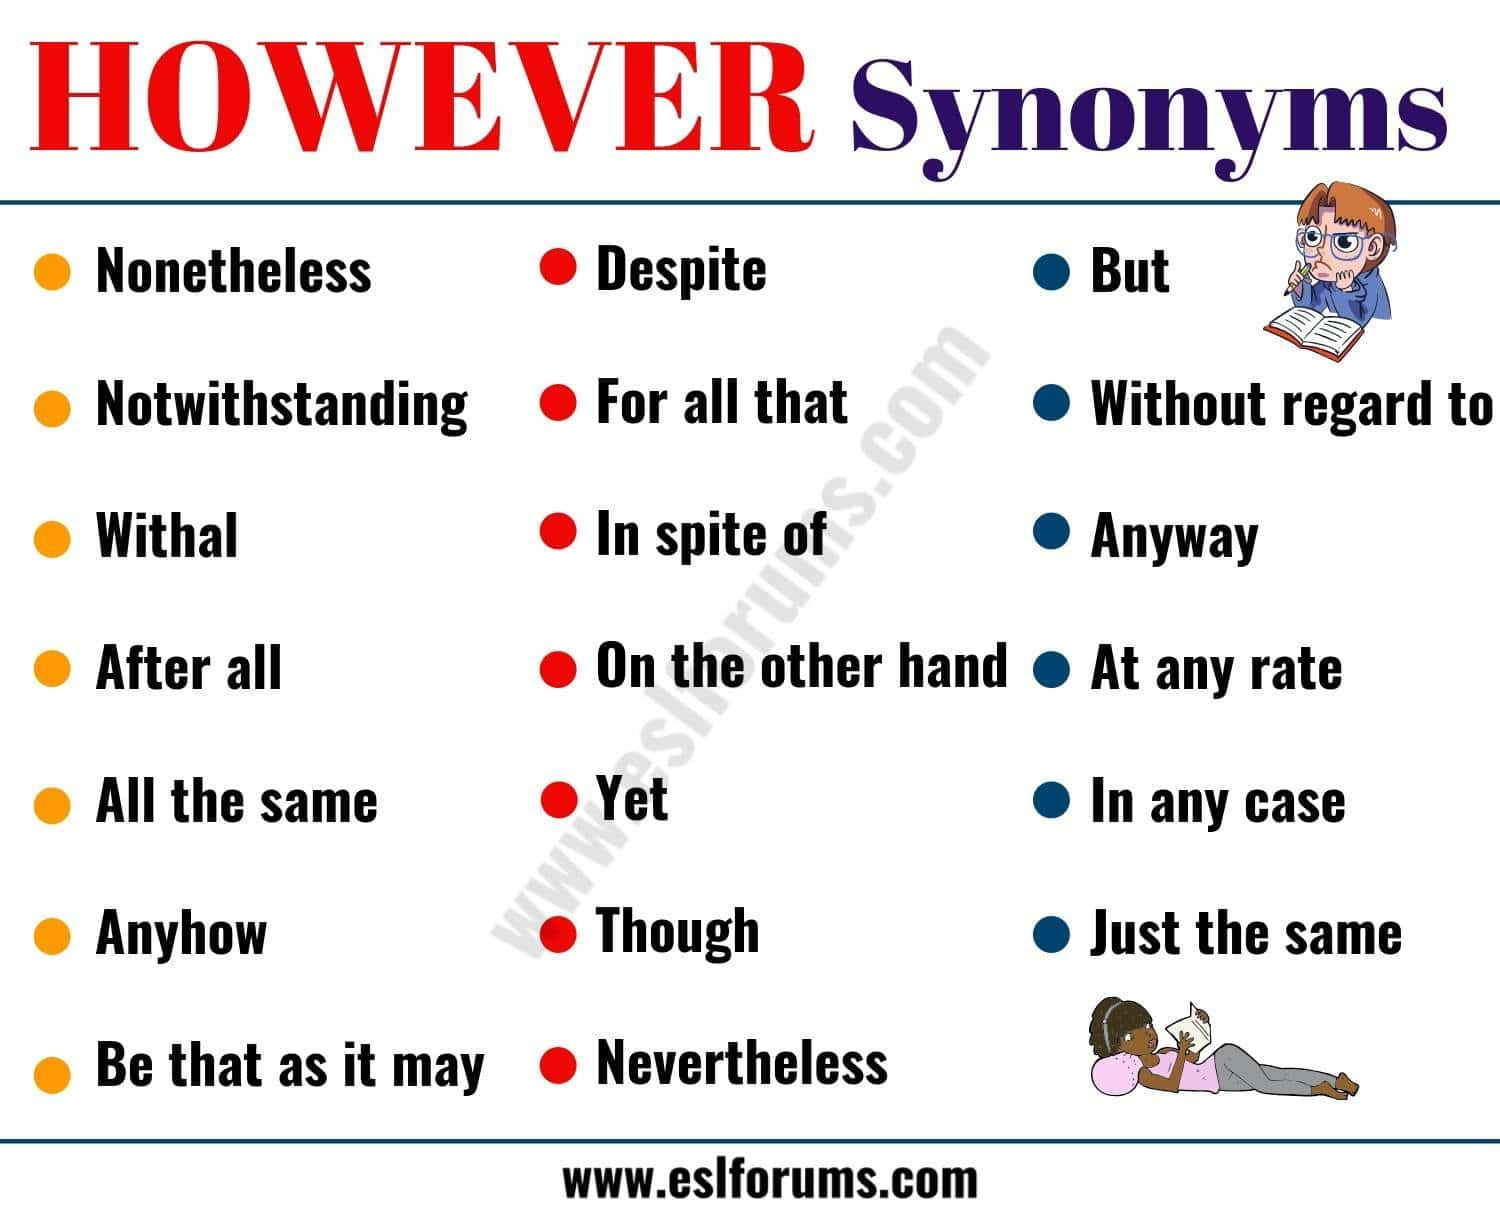 However Synonym In